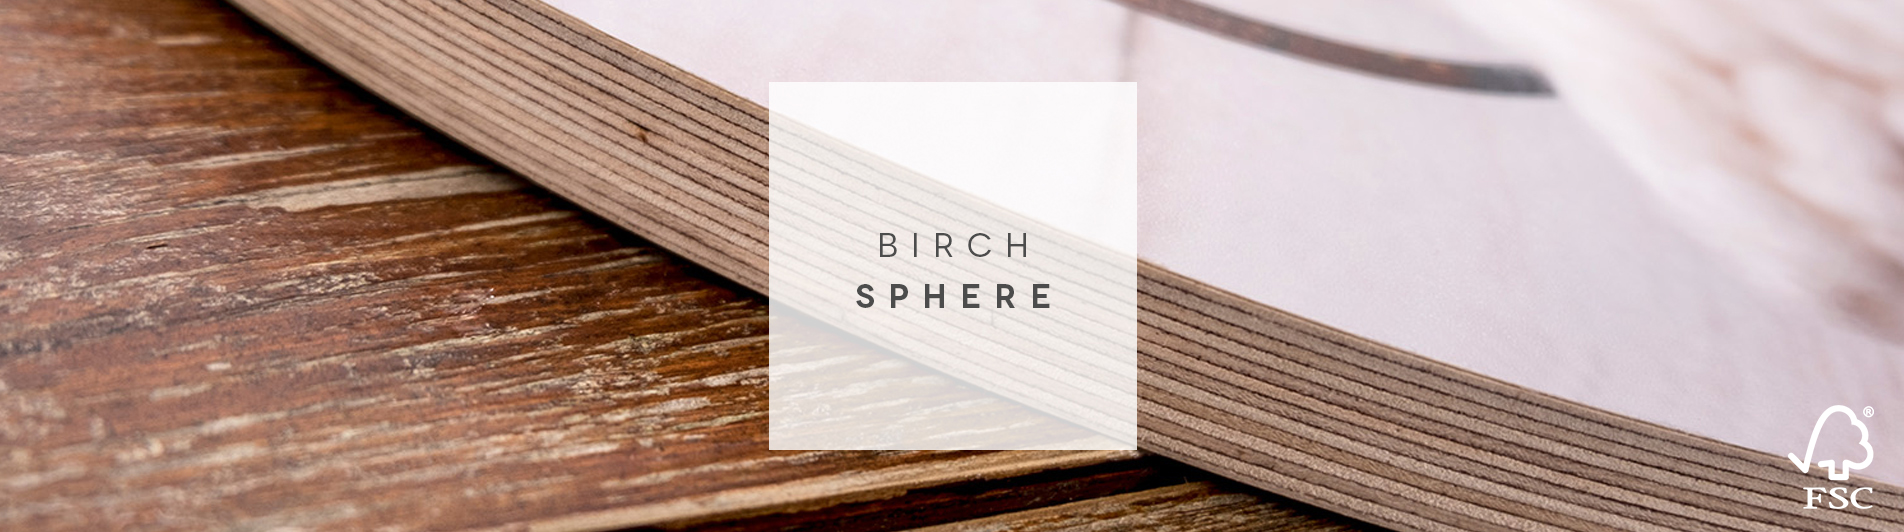 Birch Sphere